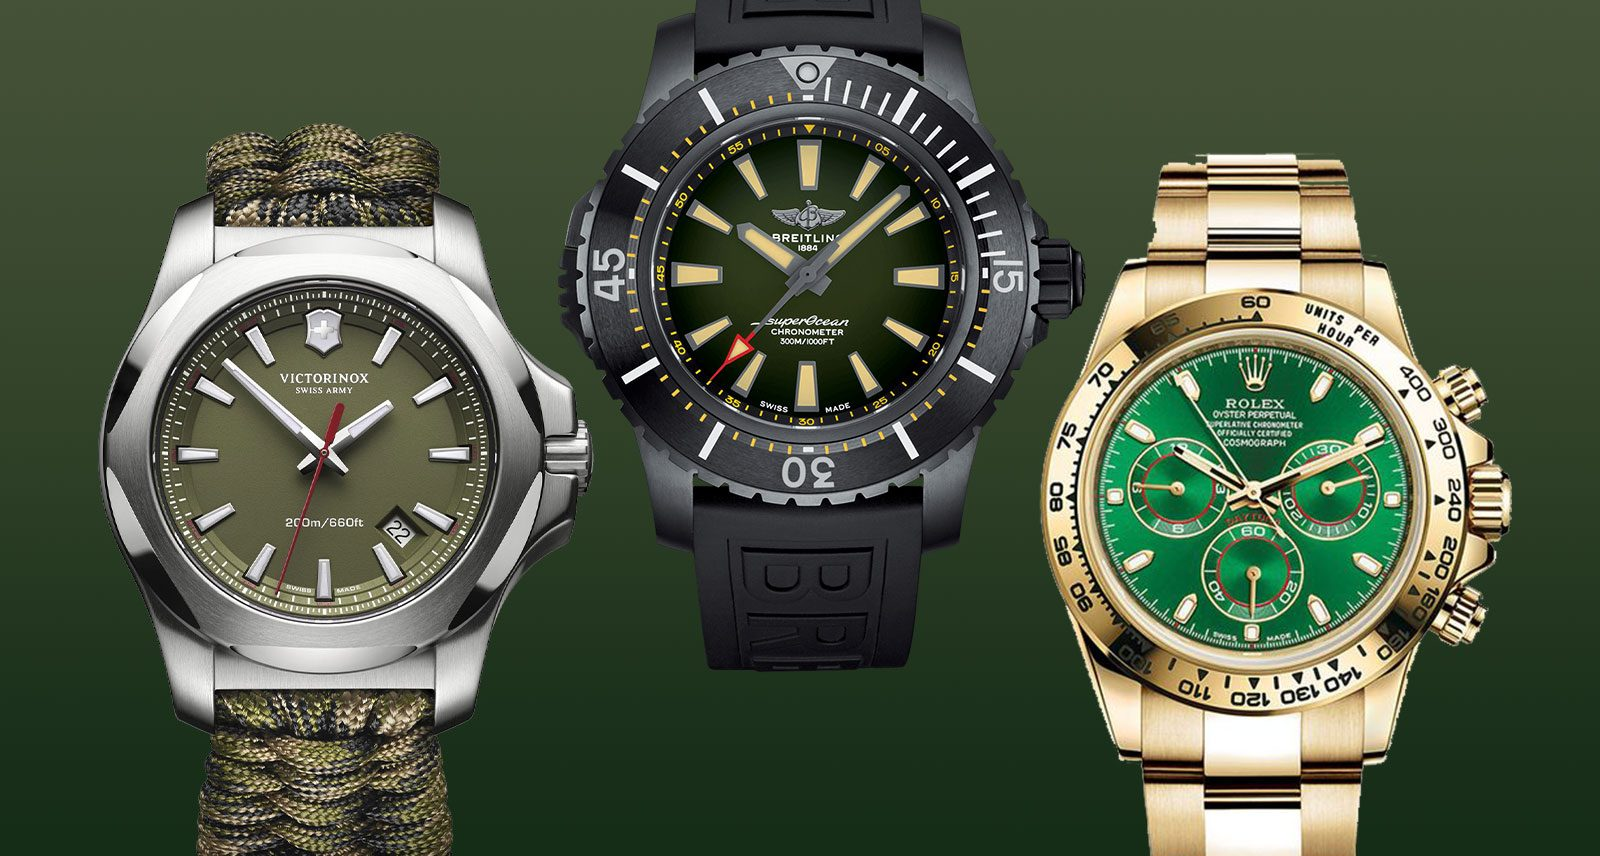 Swap Your Green Beer for a Green Watch This St. Patrick's Day